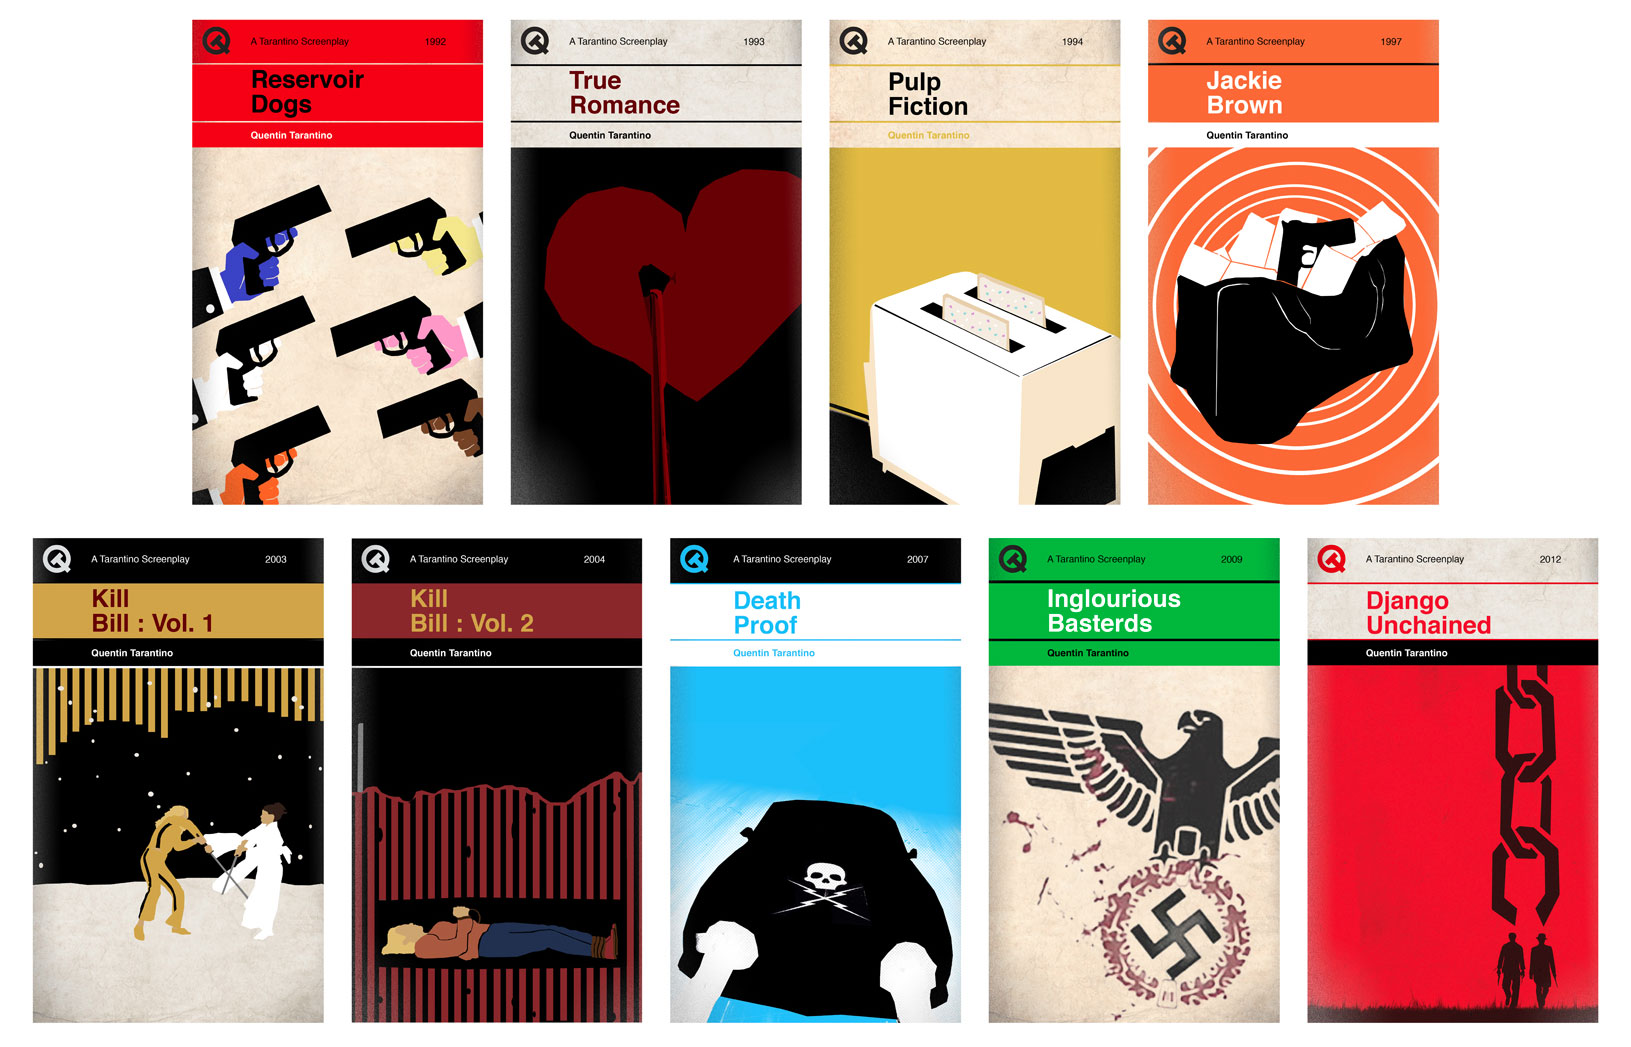 Penguin Book Covers Poster ~ Quentin tarantino movies as penguin classics the book haven